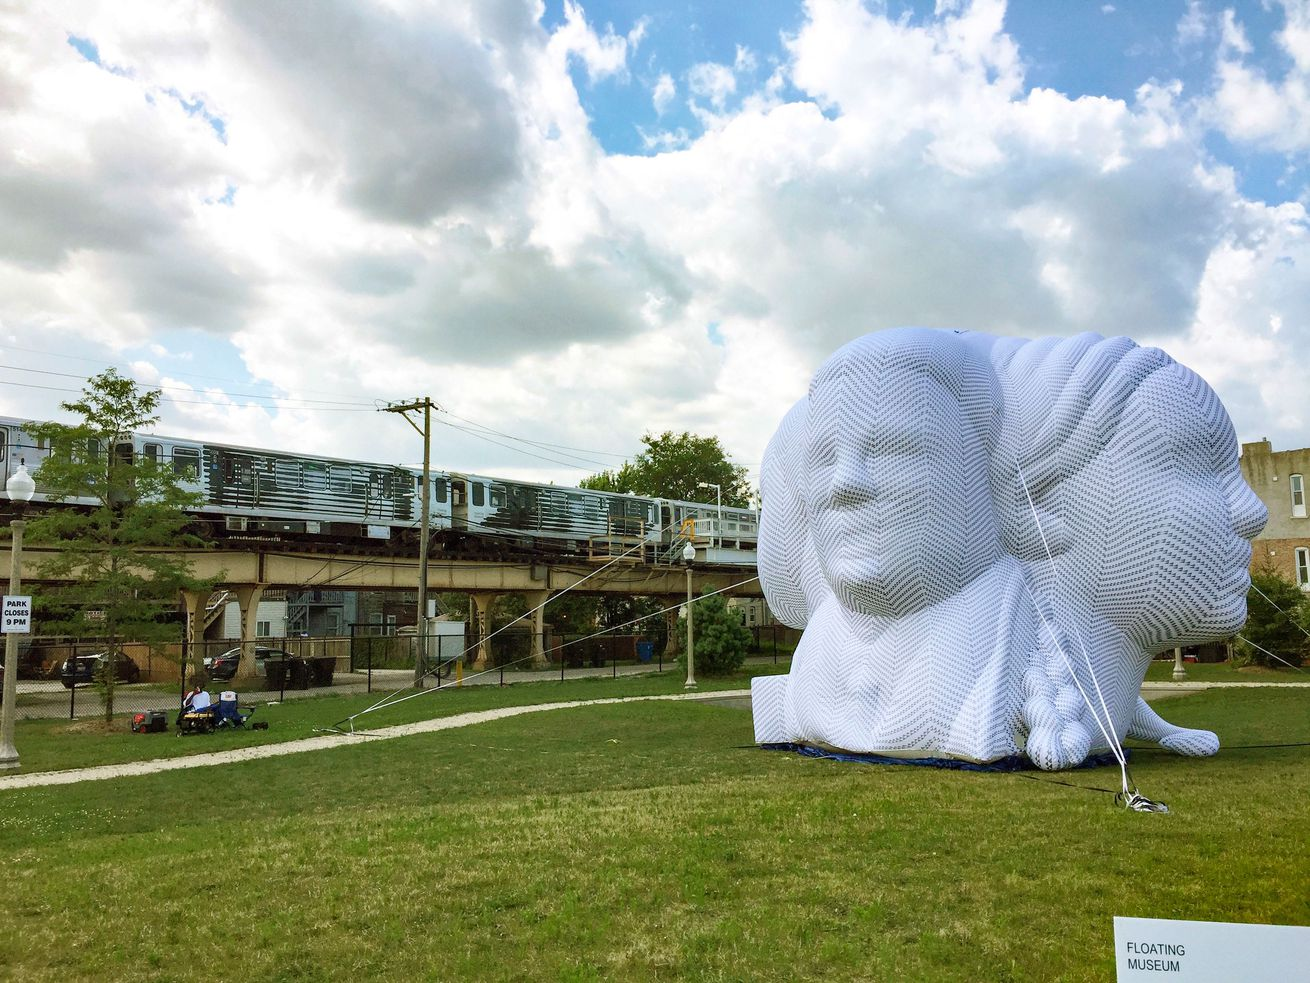 On a grassy lawn an inflated, 25-foot, four-faced bust sits next to rusty, yellow elevated train tracks in Chicago under a blue and puffy cloudy sky.